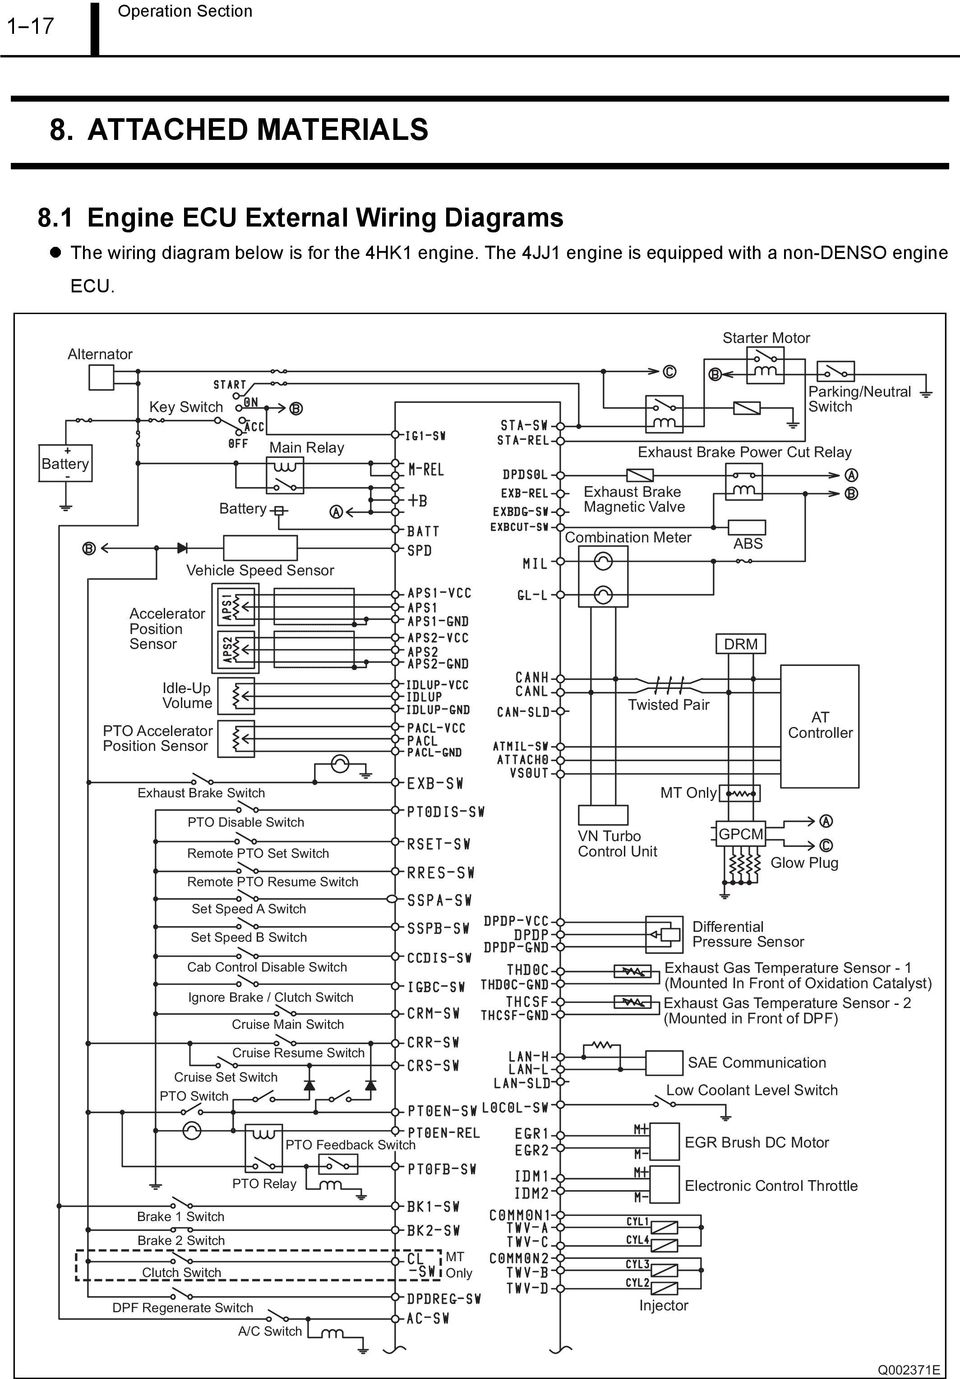 common rail system crs service manual operation pdf wiring diagram below is for the 4hk1 engine